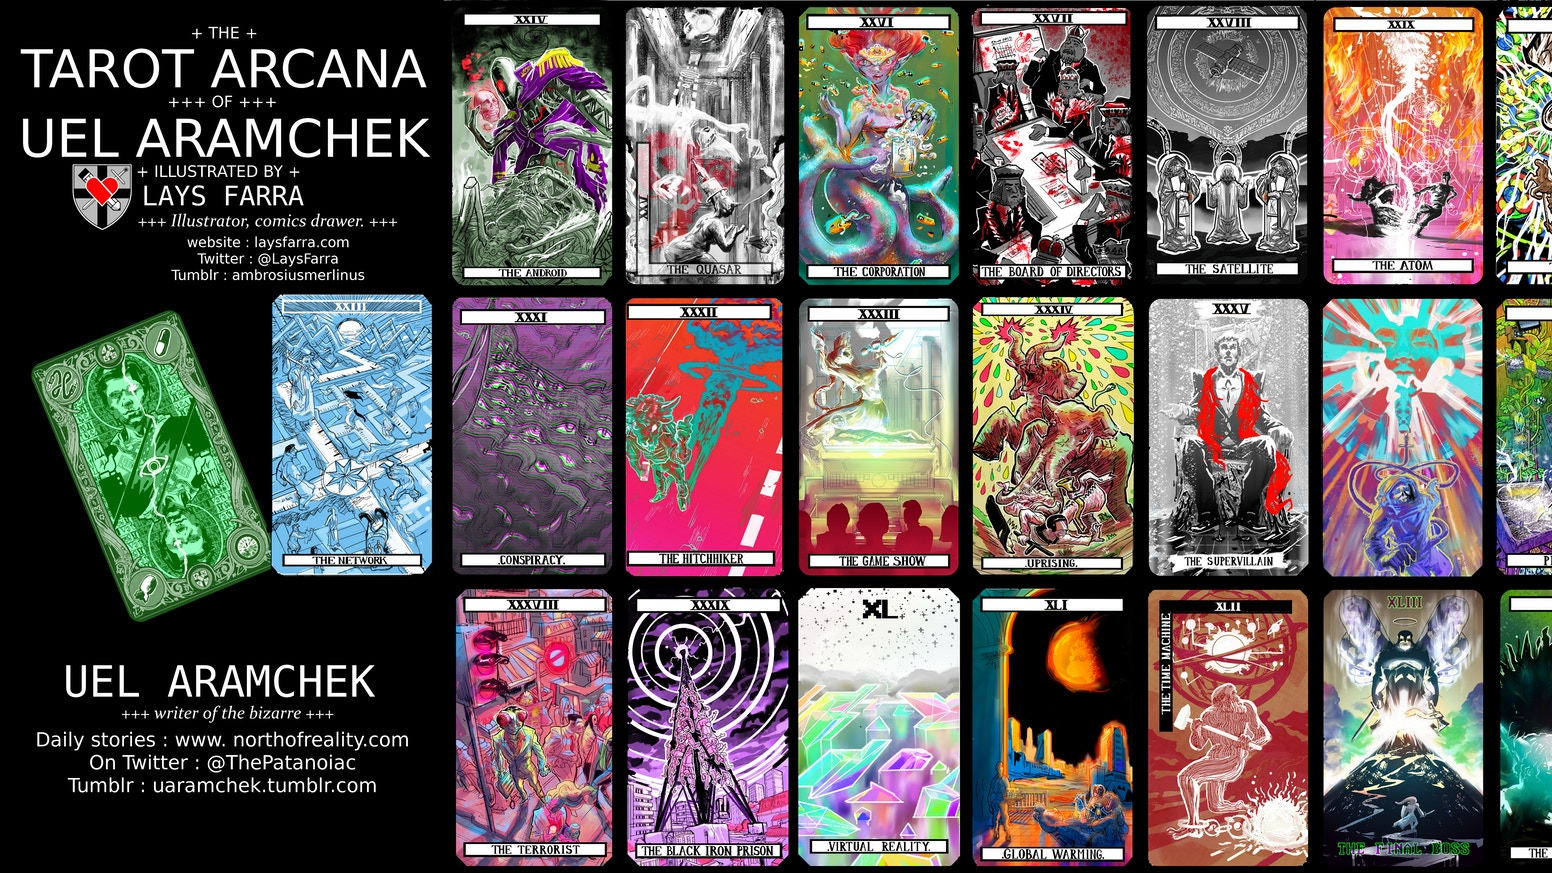 Twenty-two modern antipodes to the ancestral Tarot Arcana, written by Uel Aramchek and illustrated by Lays Farra.